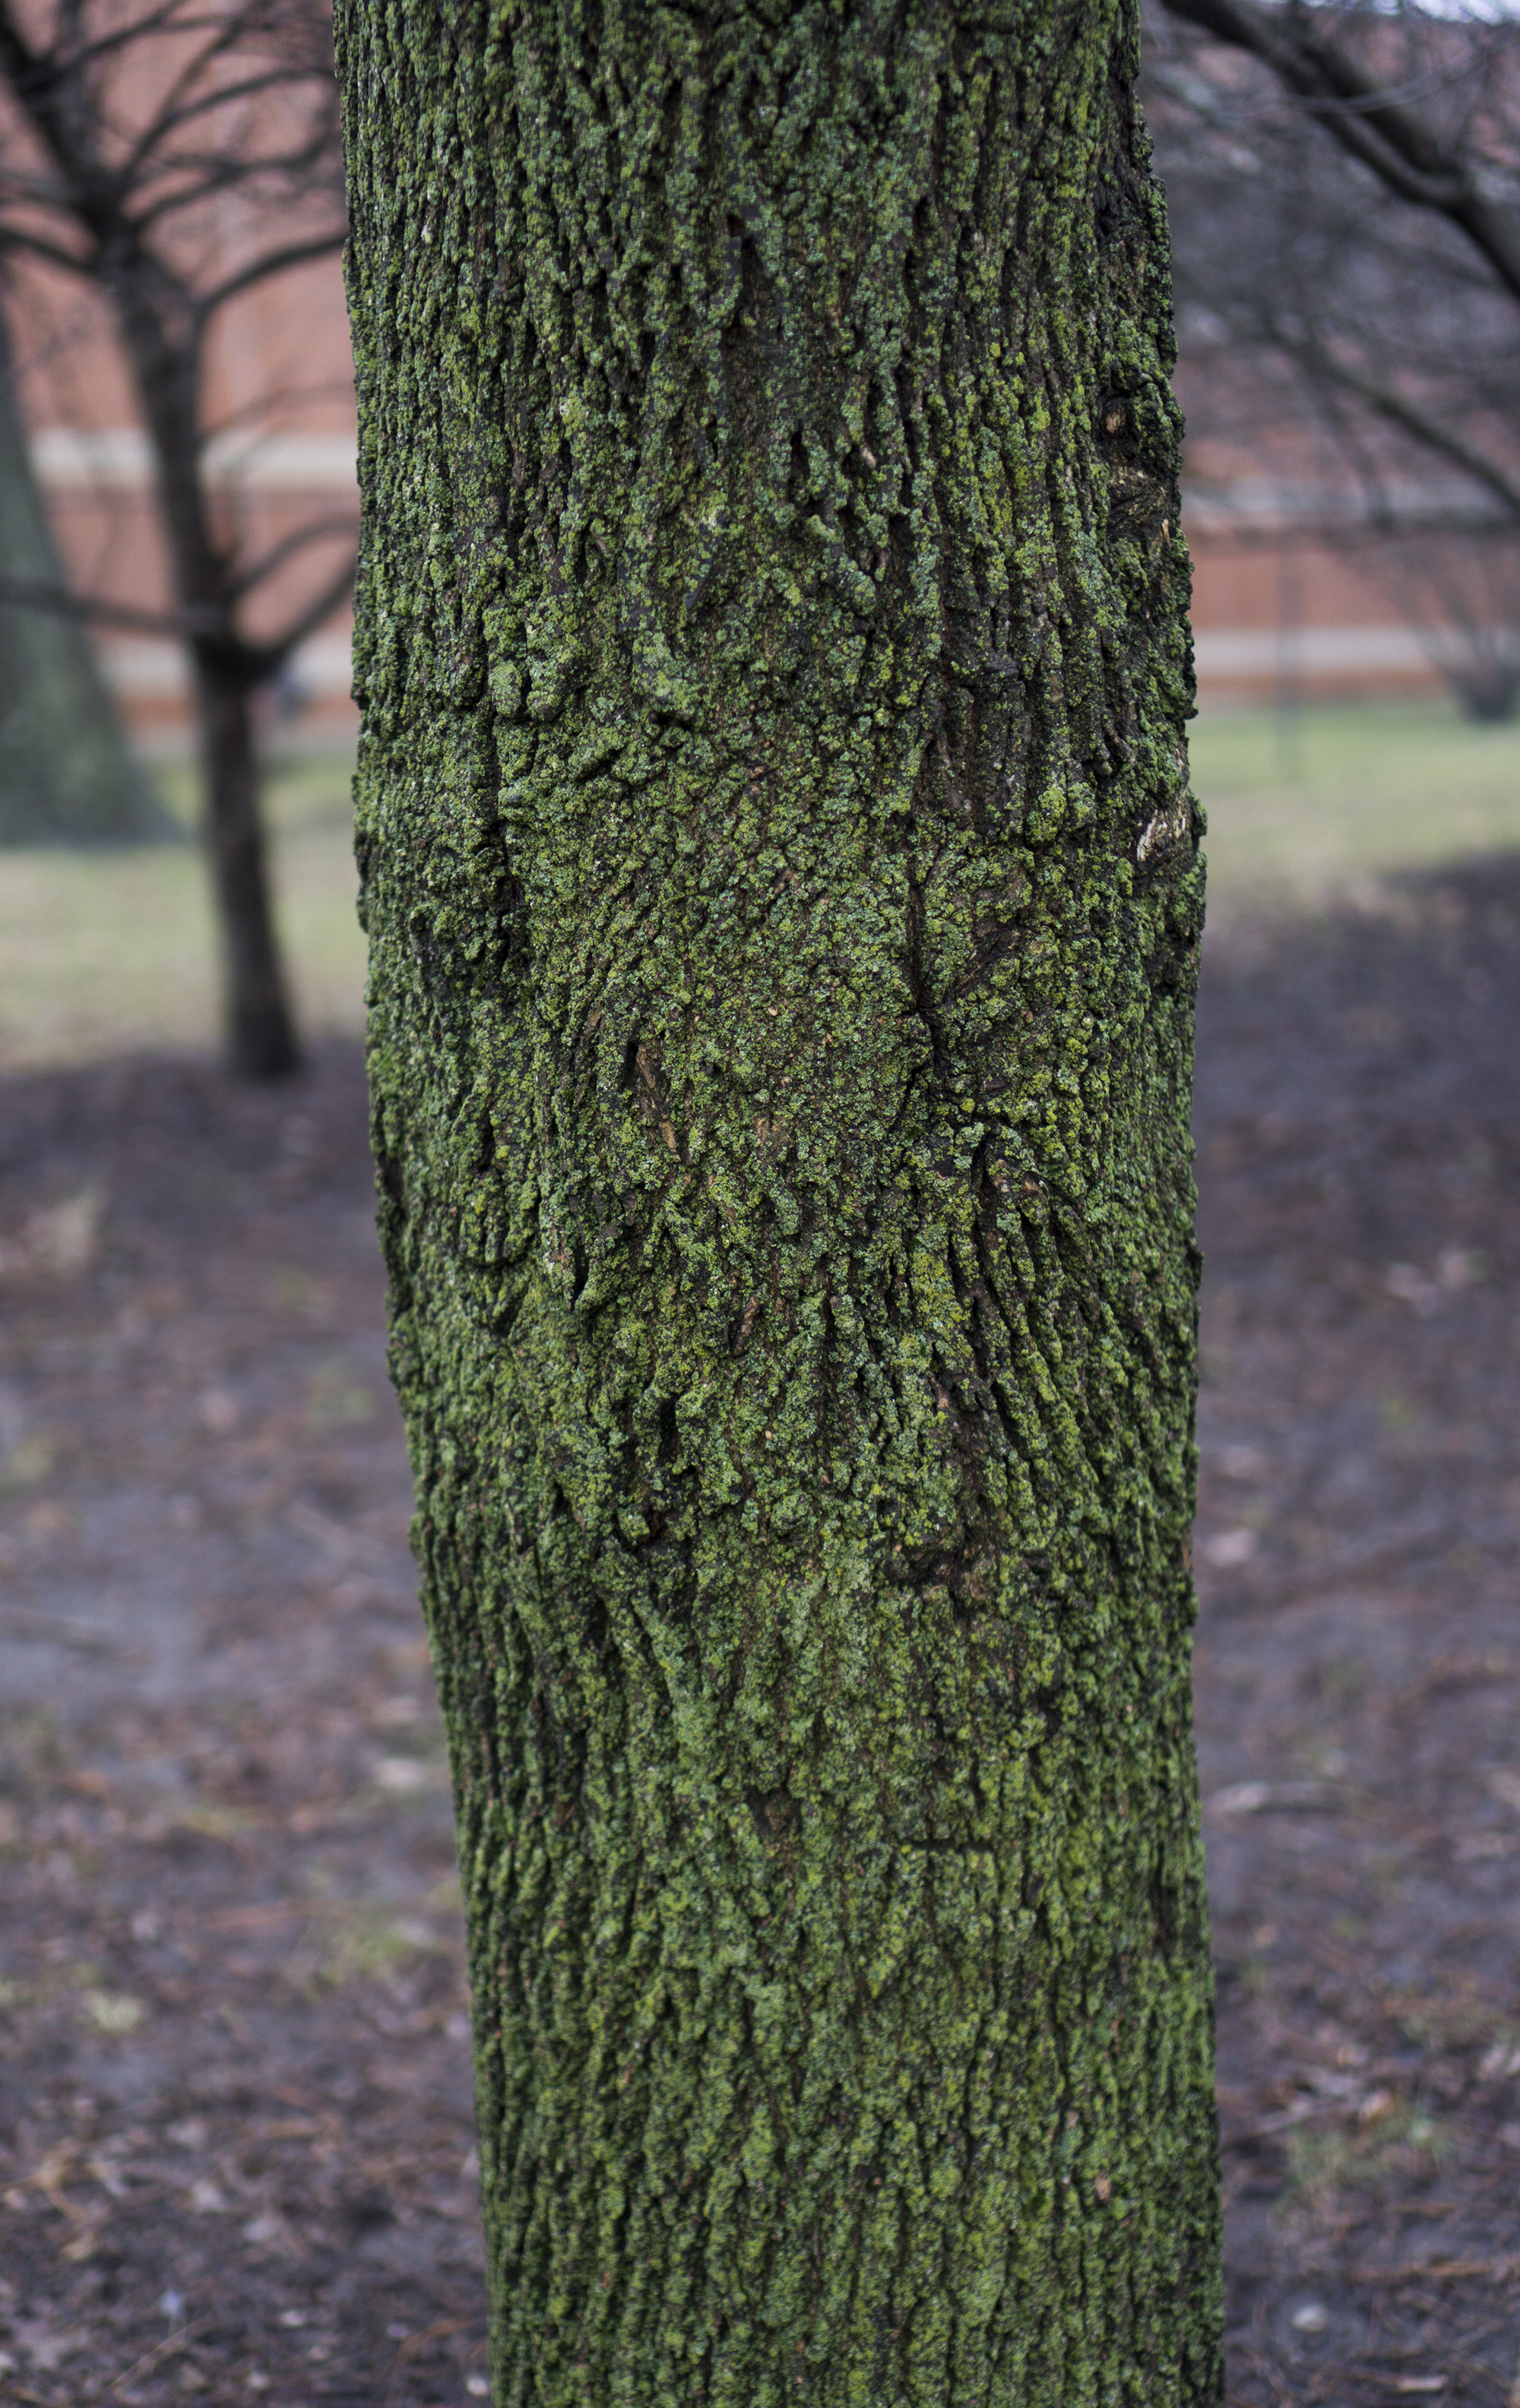 Mossy tree trunk in Gompers Park, Chicago IL / Darker than Green